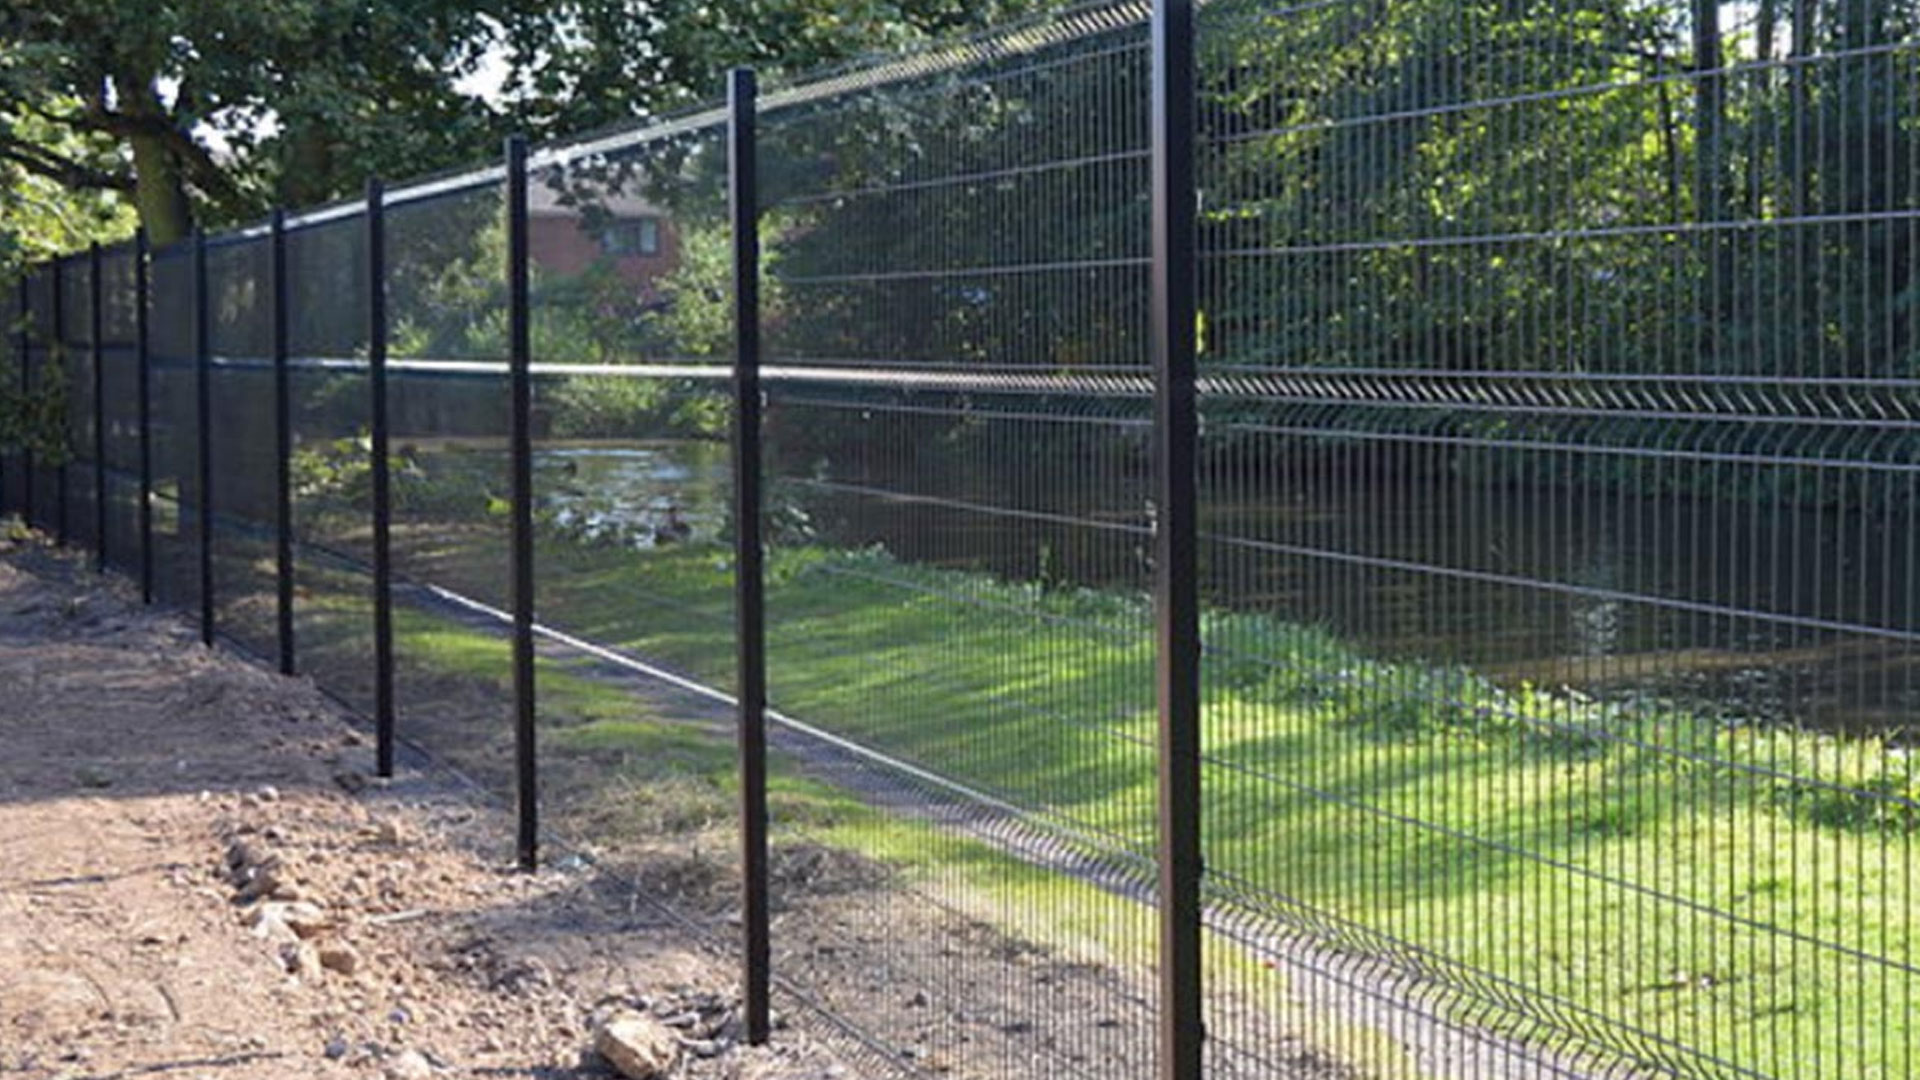 'V' Profile Mesh Fencing